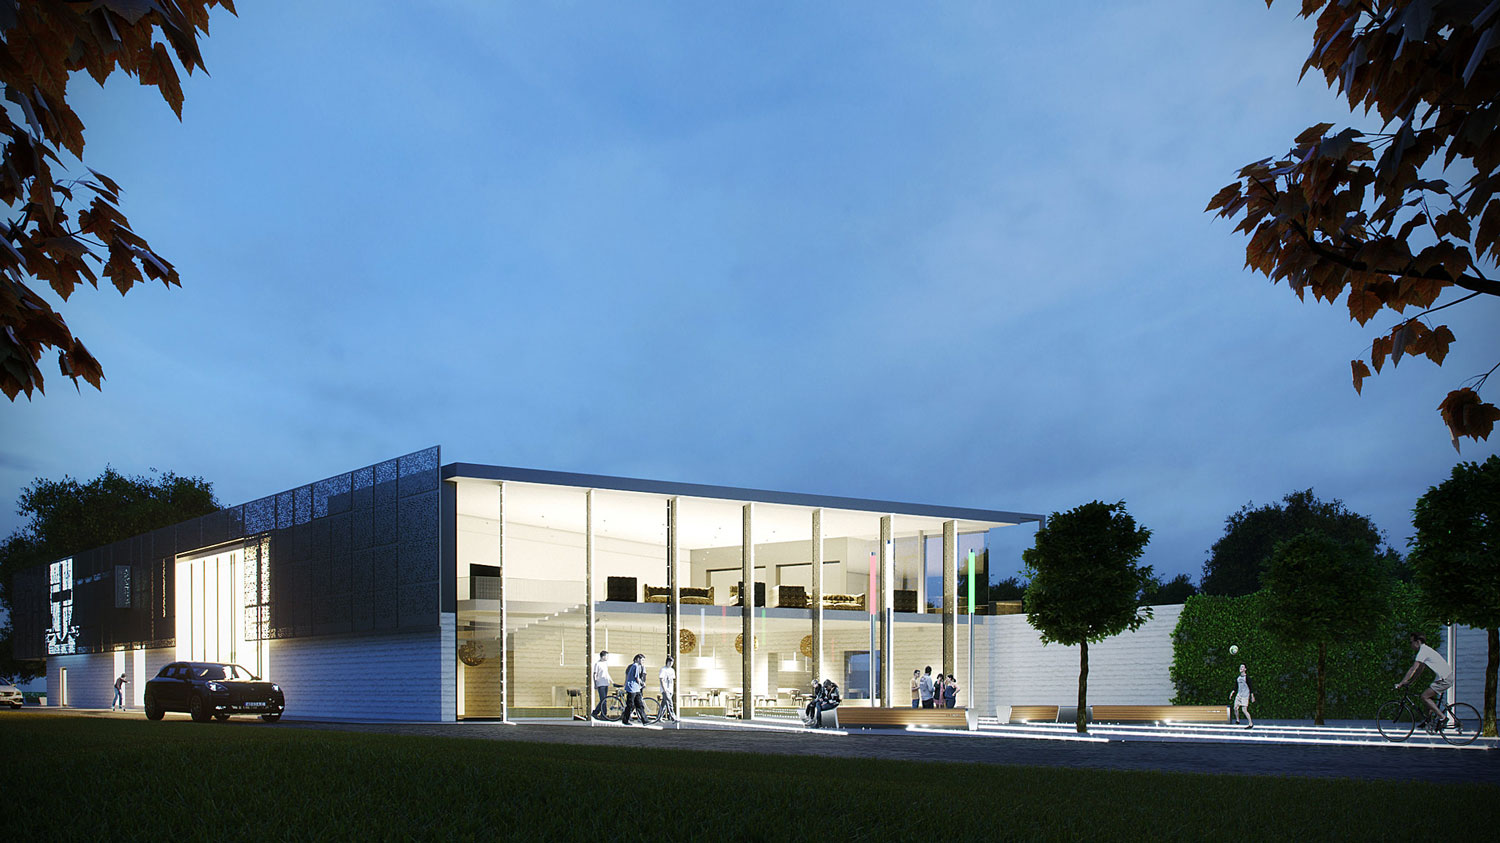 ranelagh-playing-fields-sports-facility-our-work-commercial-ascot-design-view1.jpg